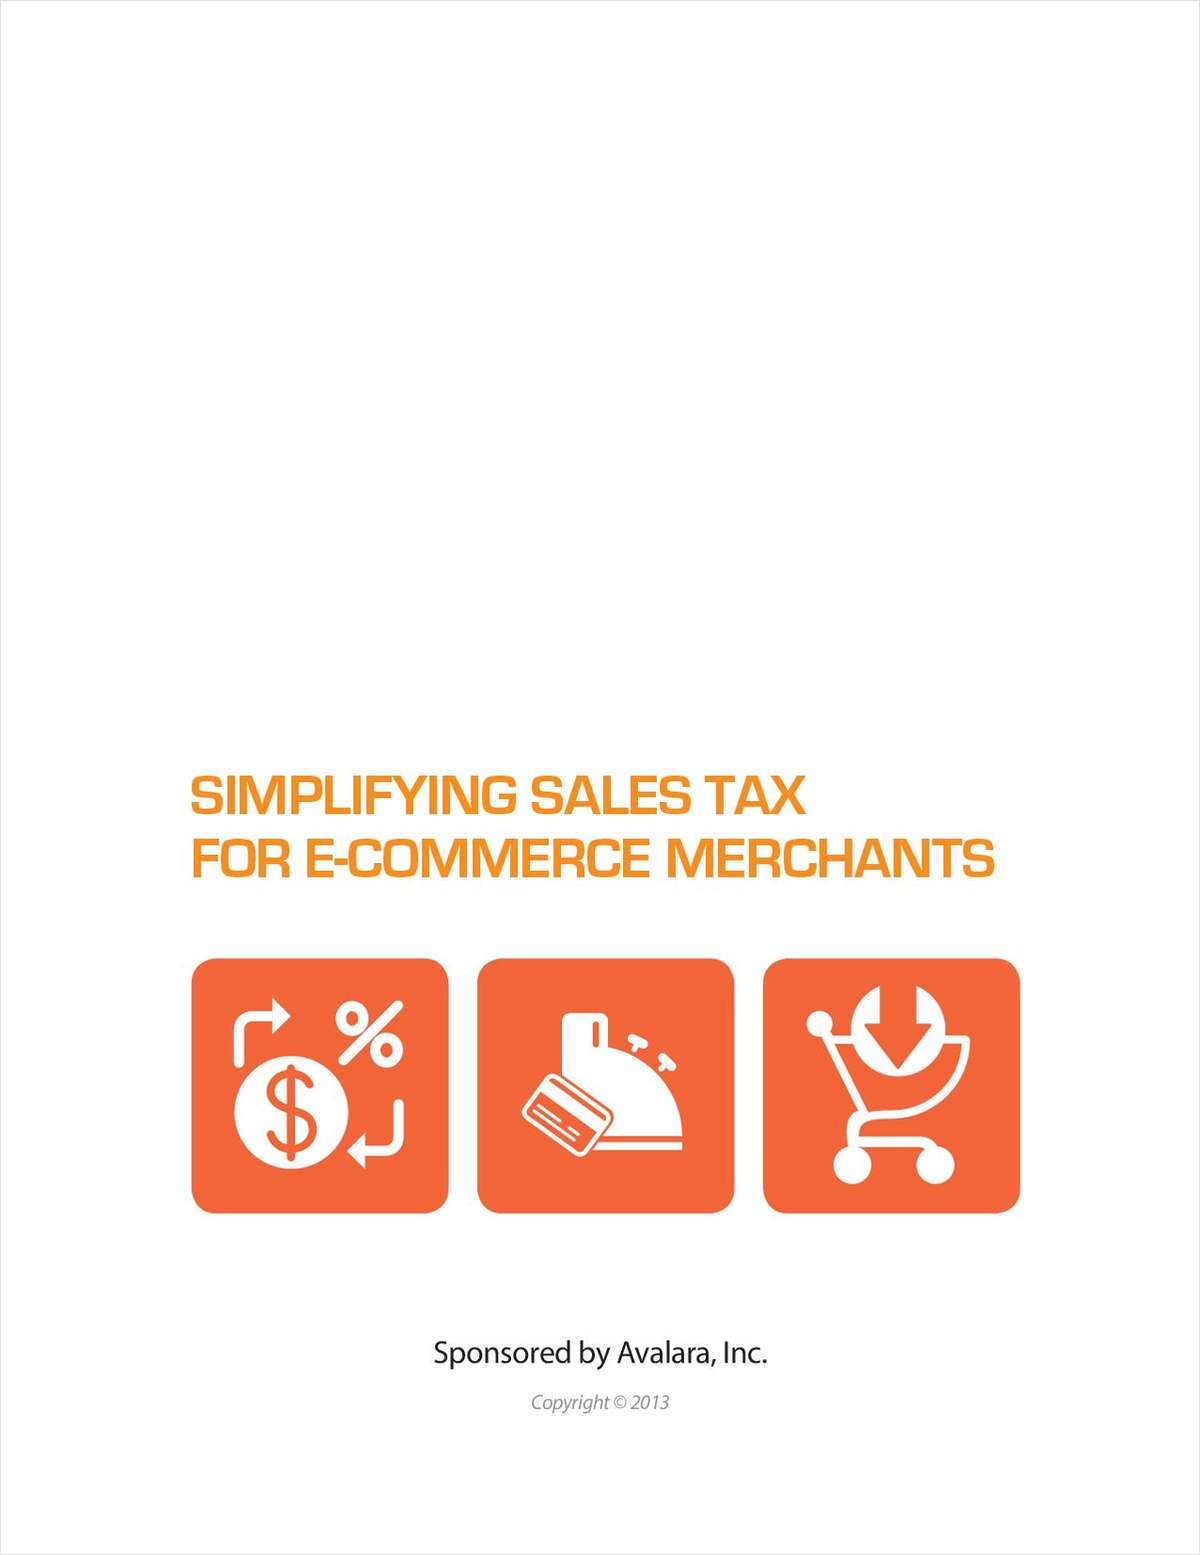 Simplifying Sales Tax For E-commerce Merchants